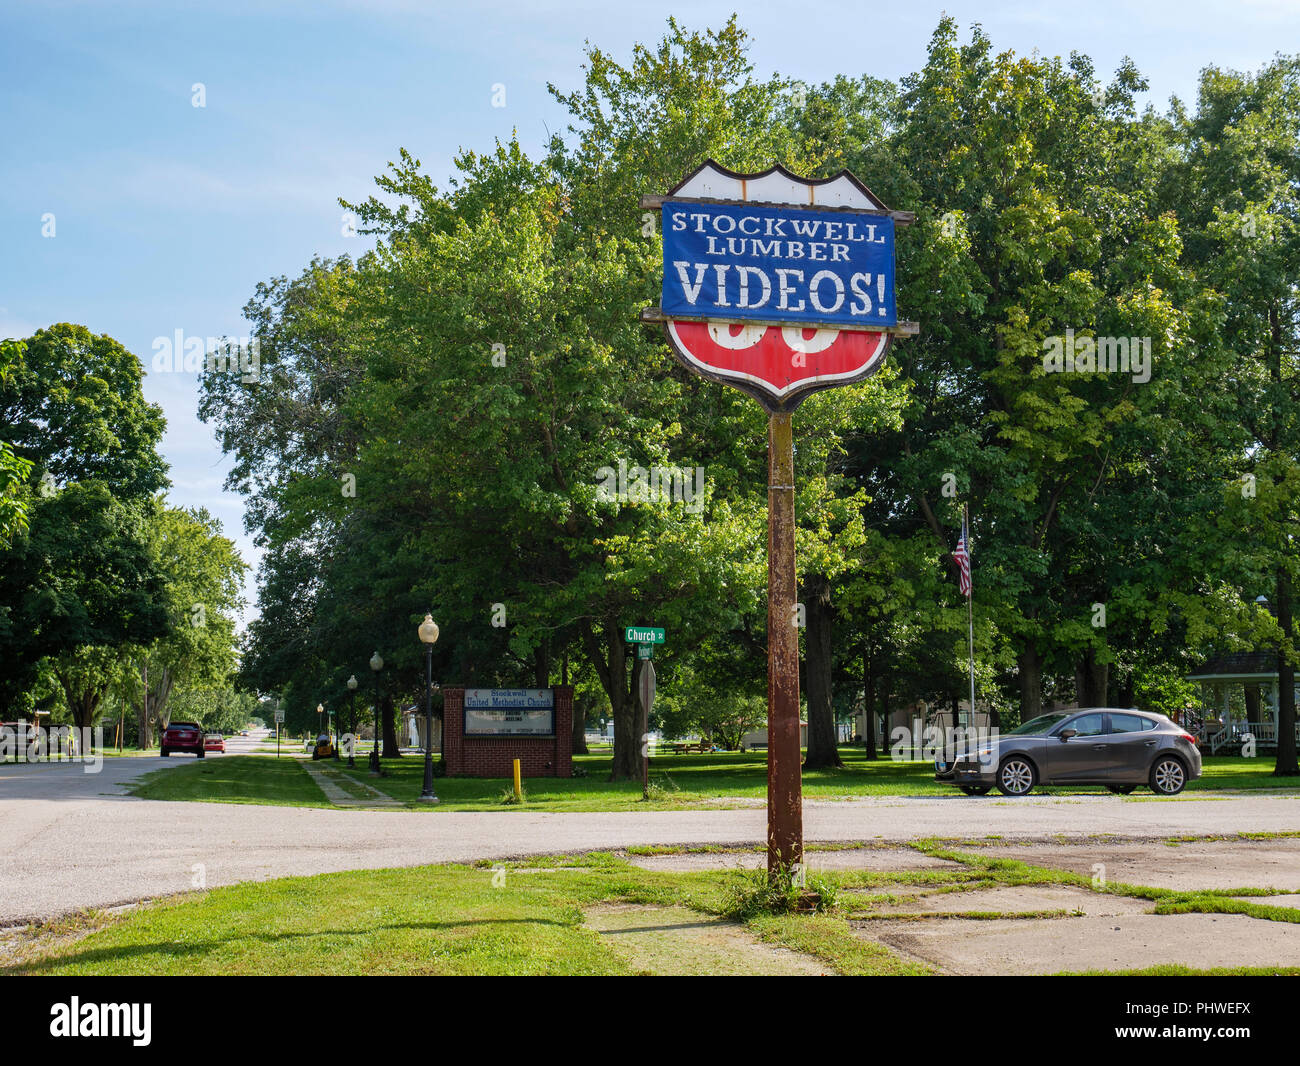 Former gas station now selling lumber and videos. Stockwell, Indiana - Stock Image